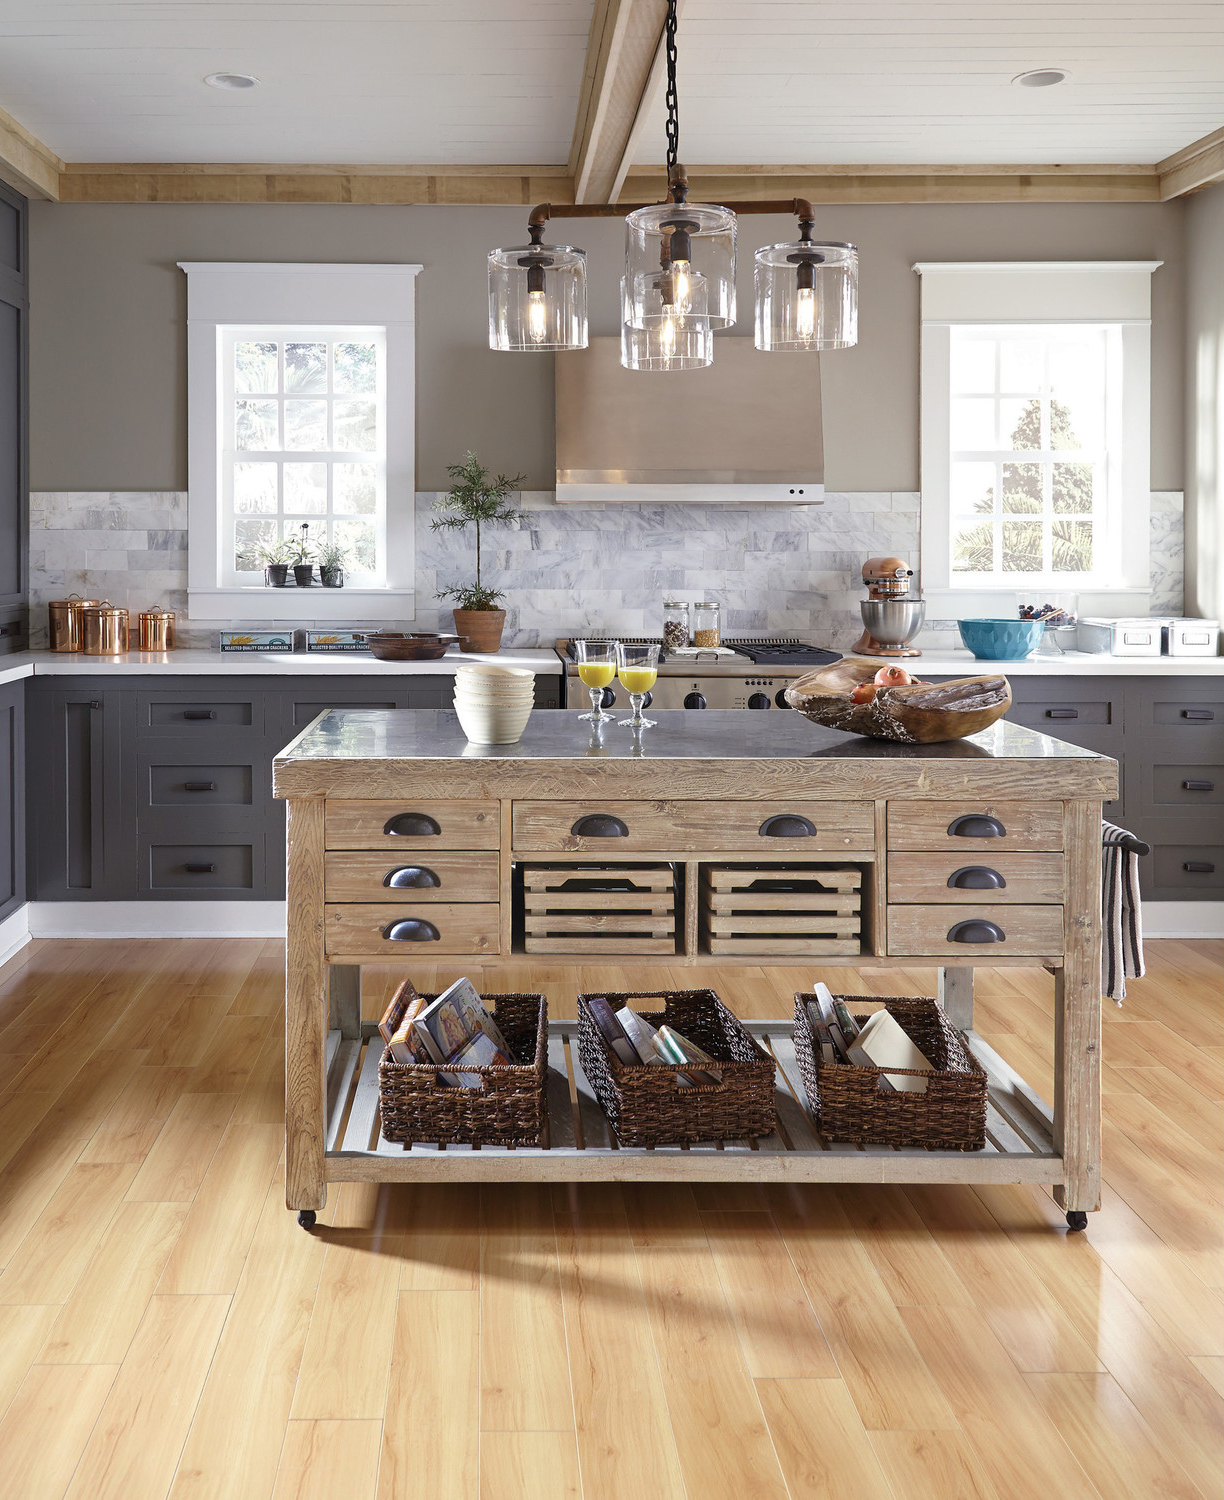 Island Kitchen Design Ideas: 15 Unique Kitchen Island Design Ideas